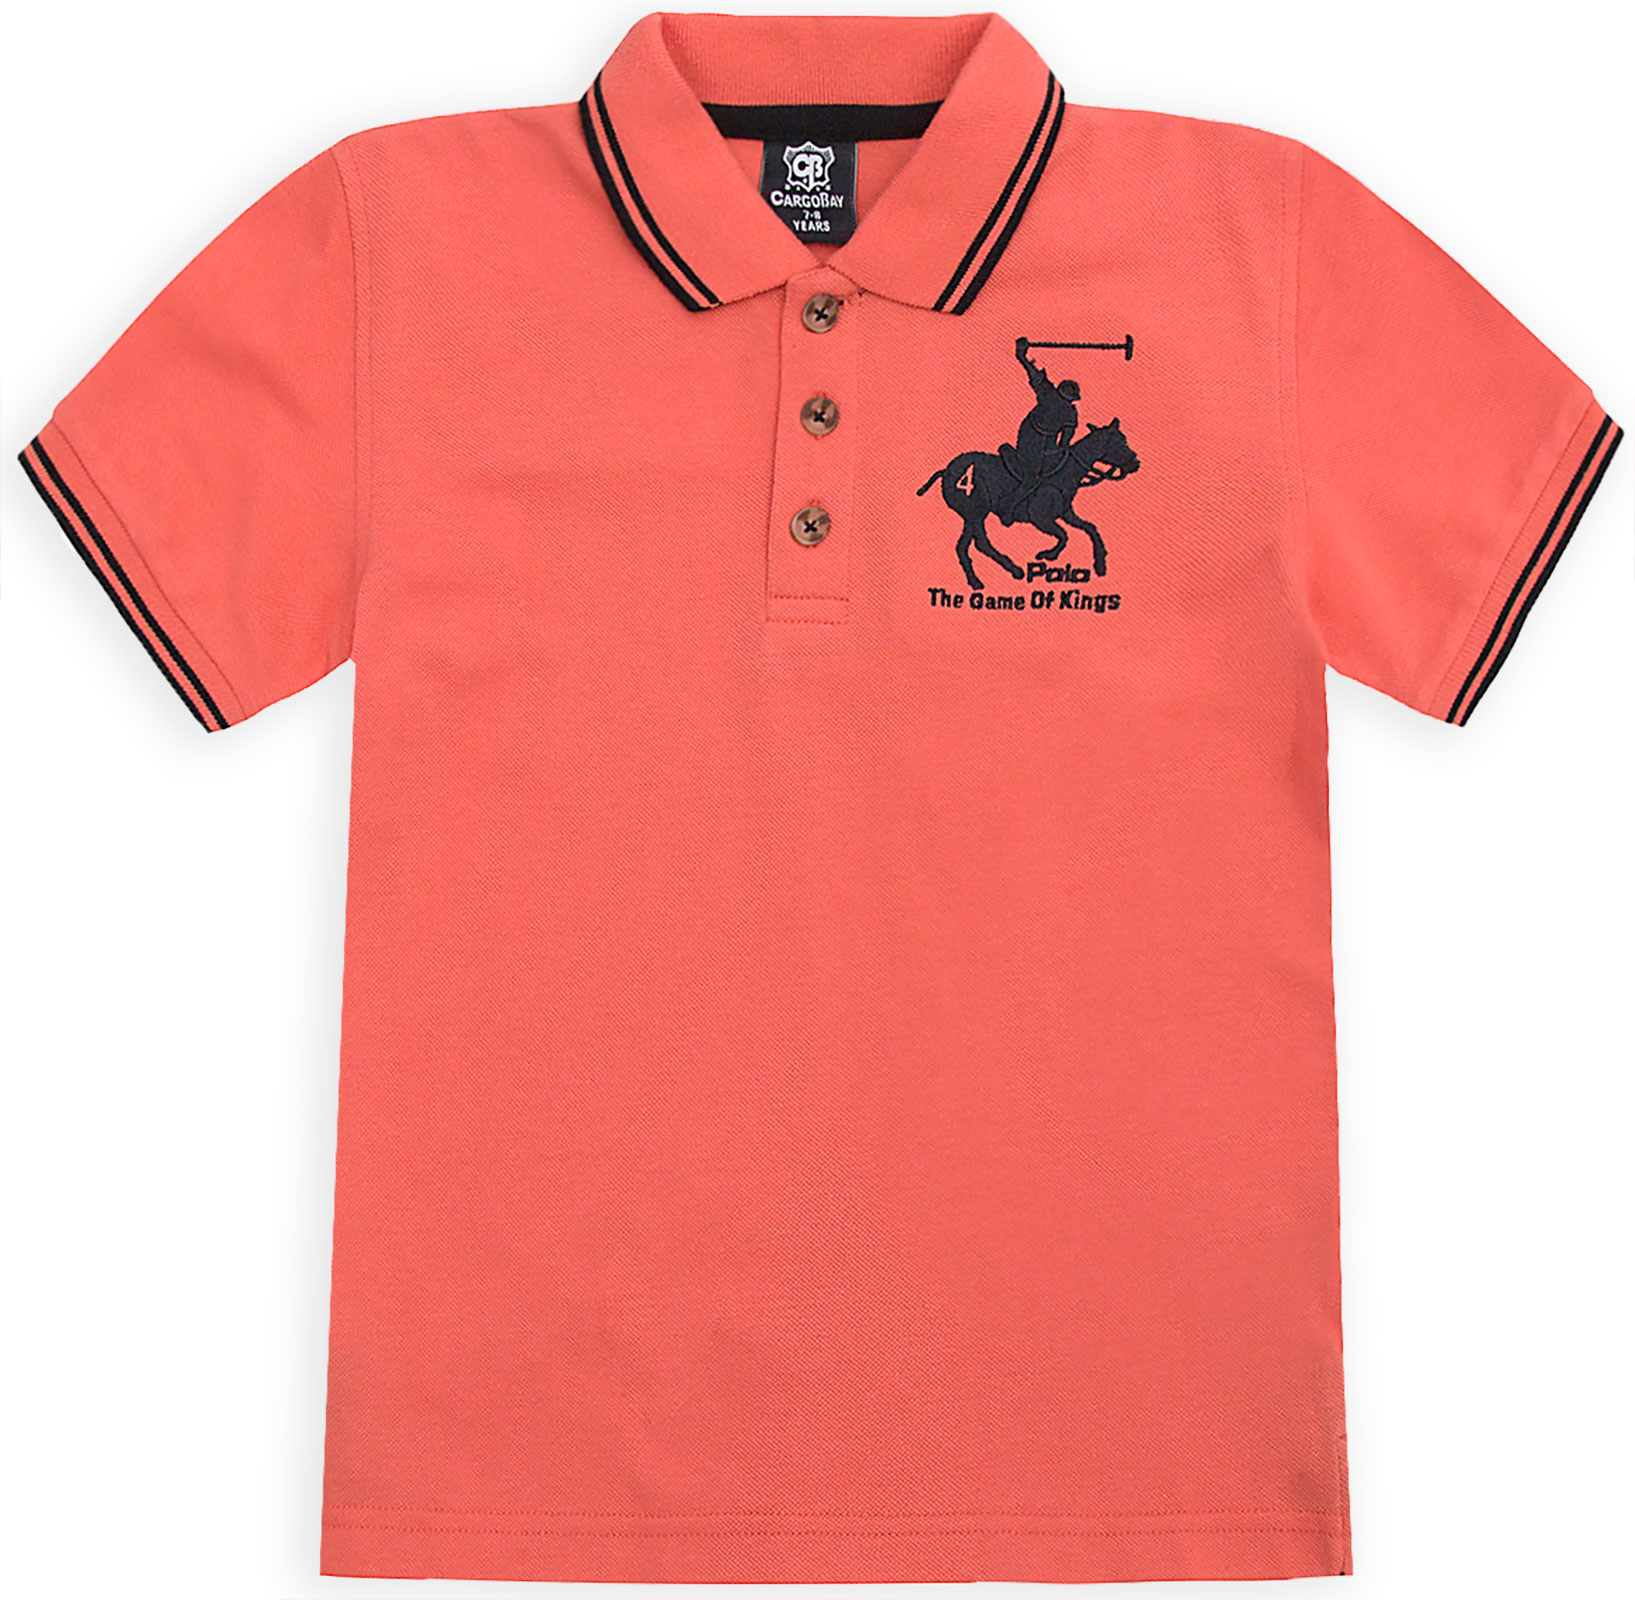 Boys-T-Shirt-Horse-Embroidery-Polo-Cotton-Top-Age-2-3-4-5-6-7-8-9-10-11-12-13-Yr thumbnail 5